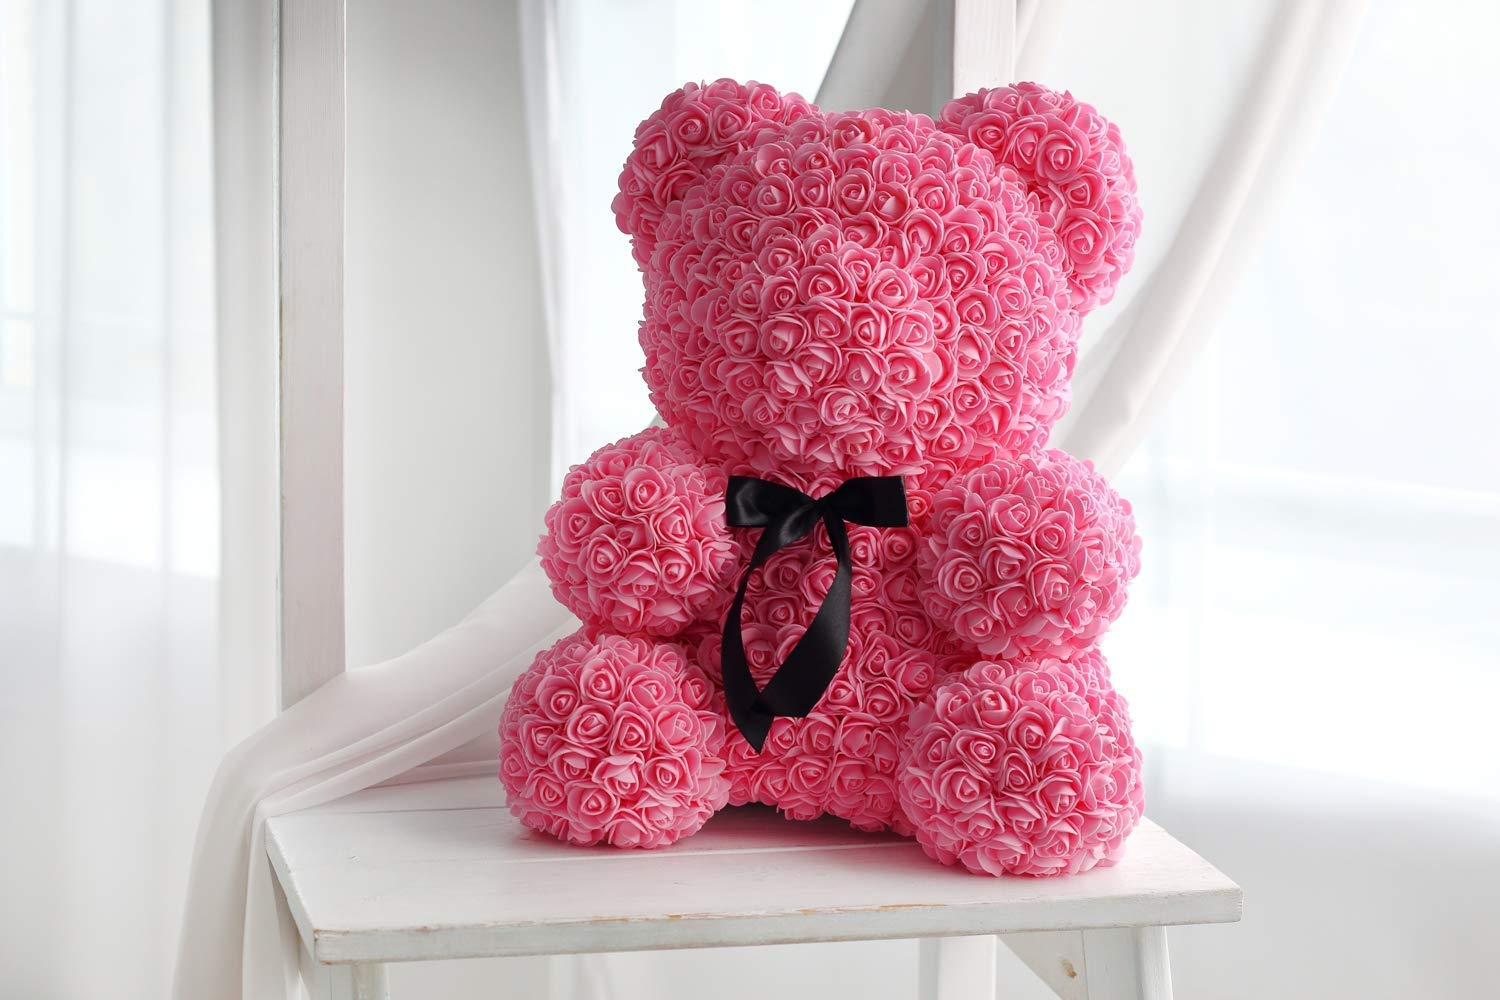 How to Pick a Rose bear for a Good Friend on a Special Event